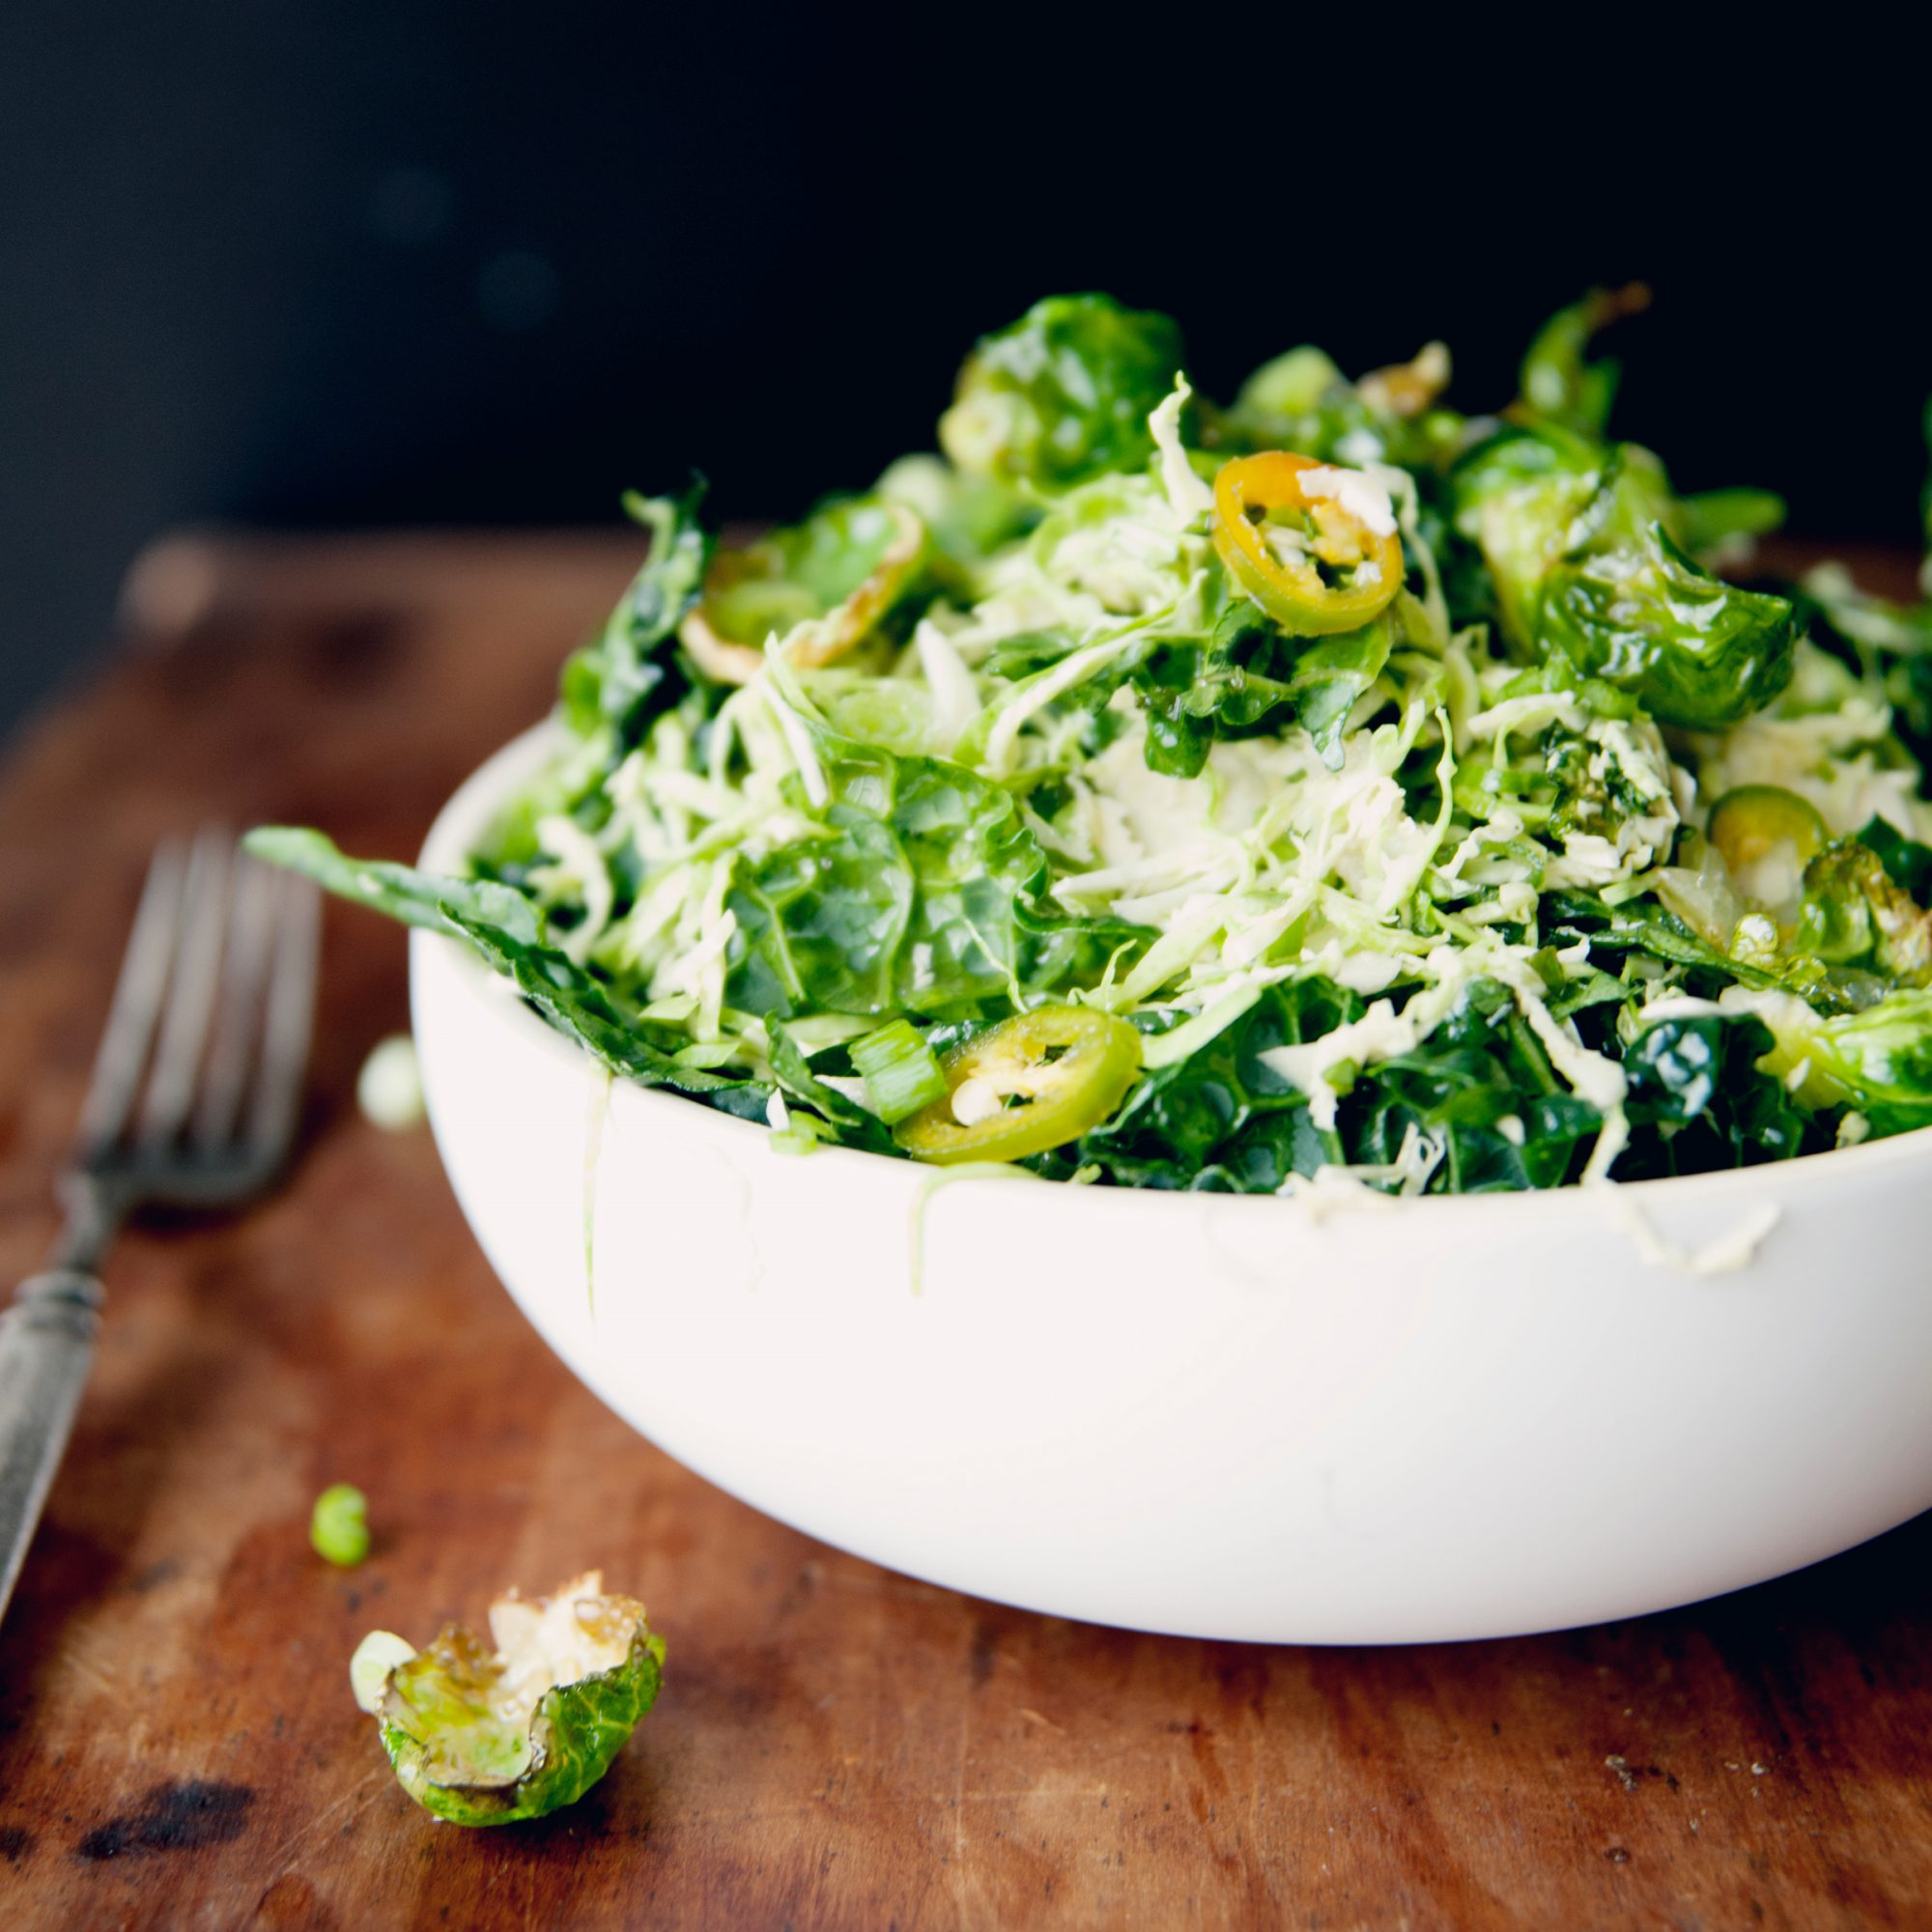 Raw and Fried Tuscan Kale and Brussels Sprout Salad